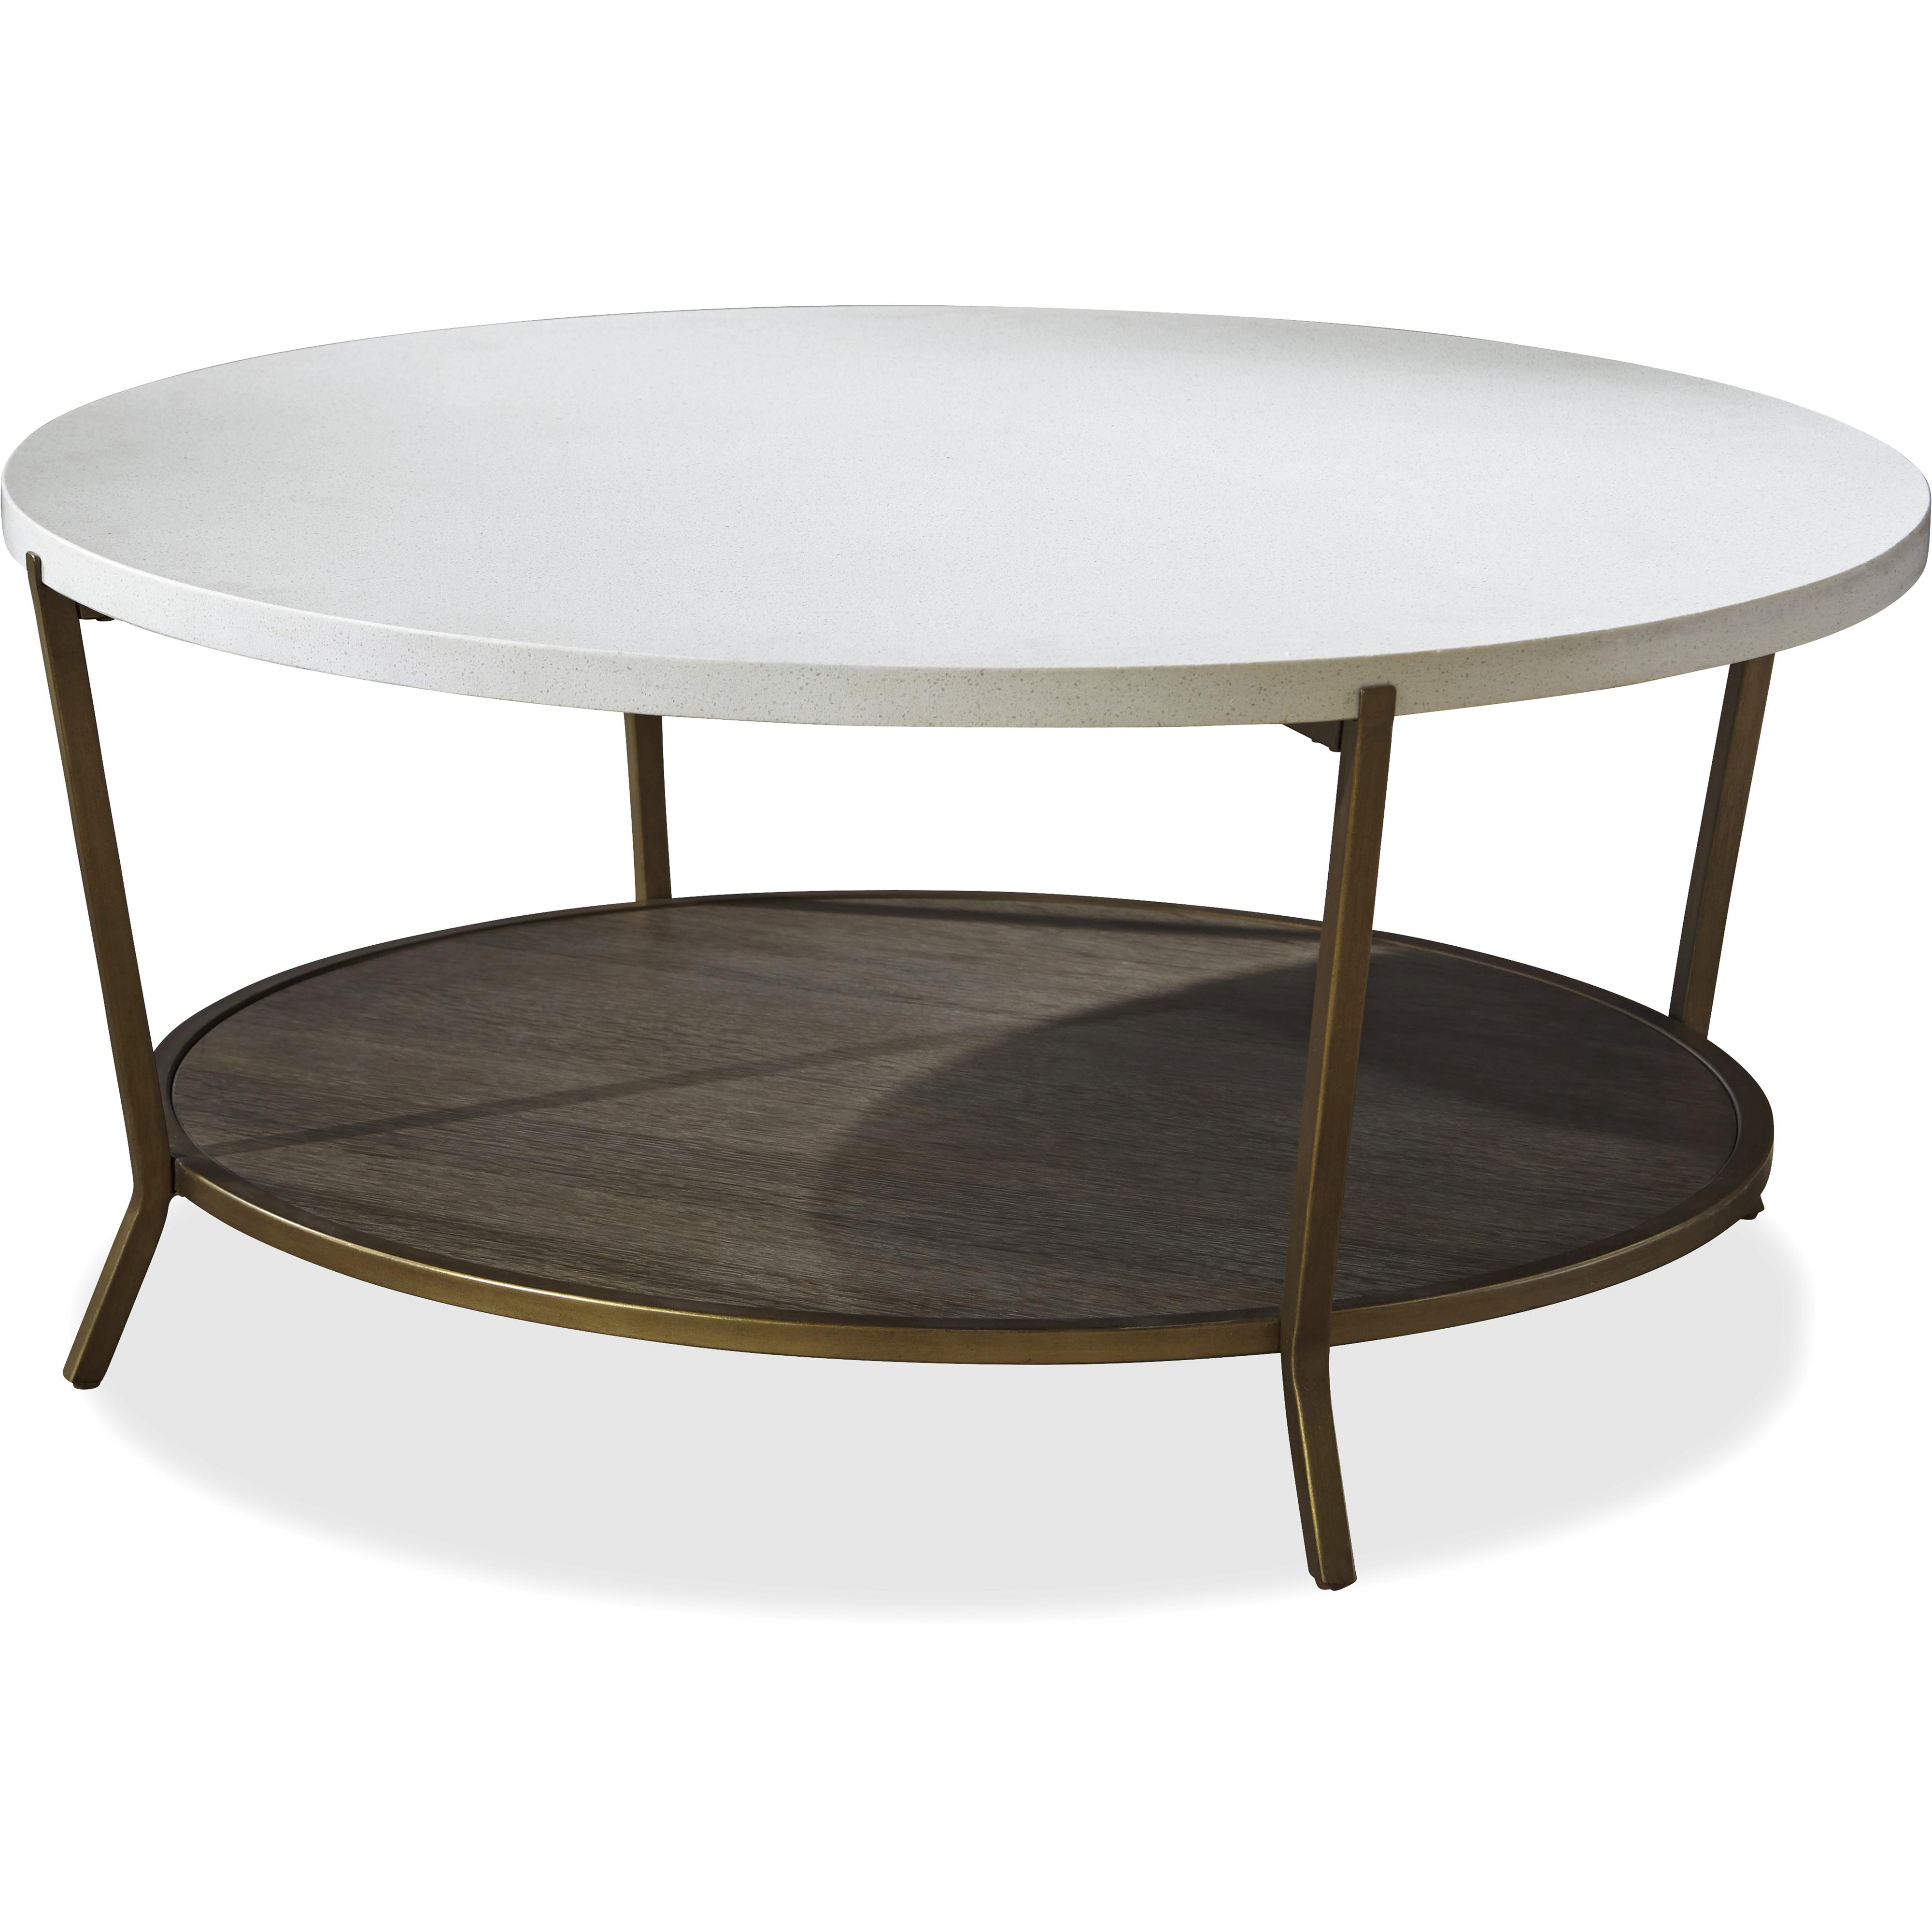 Universal playlist 507818 round cocktail table with stone for Round coffee table with chairs